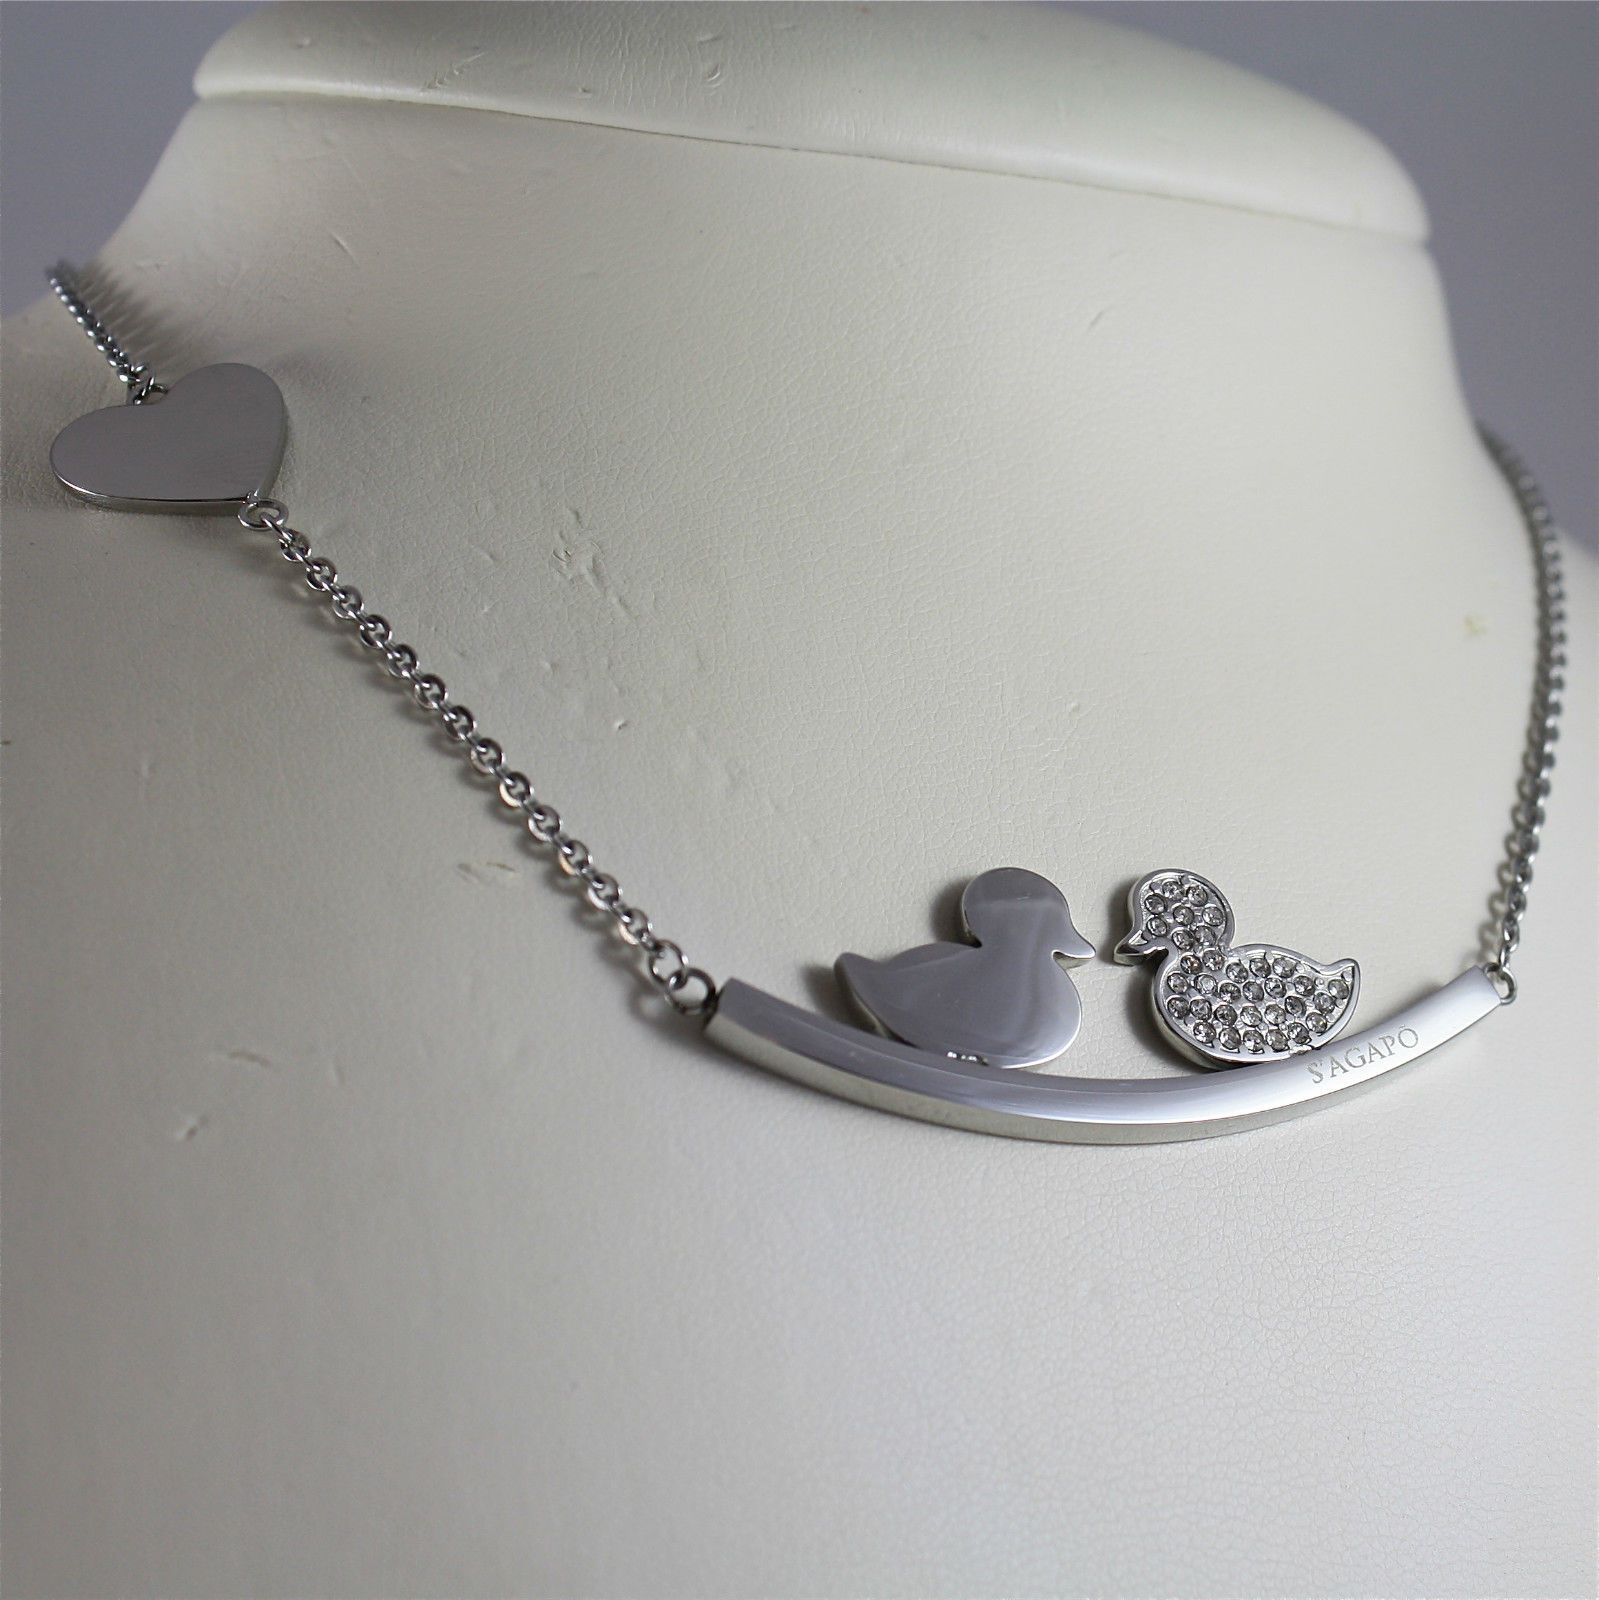 S'AGAPO' NECKLACE, 316L STEEL, KISSING DUCKS, FACETED CRYSTALS.